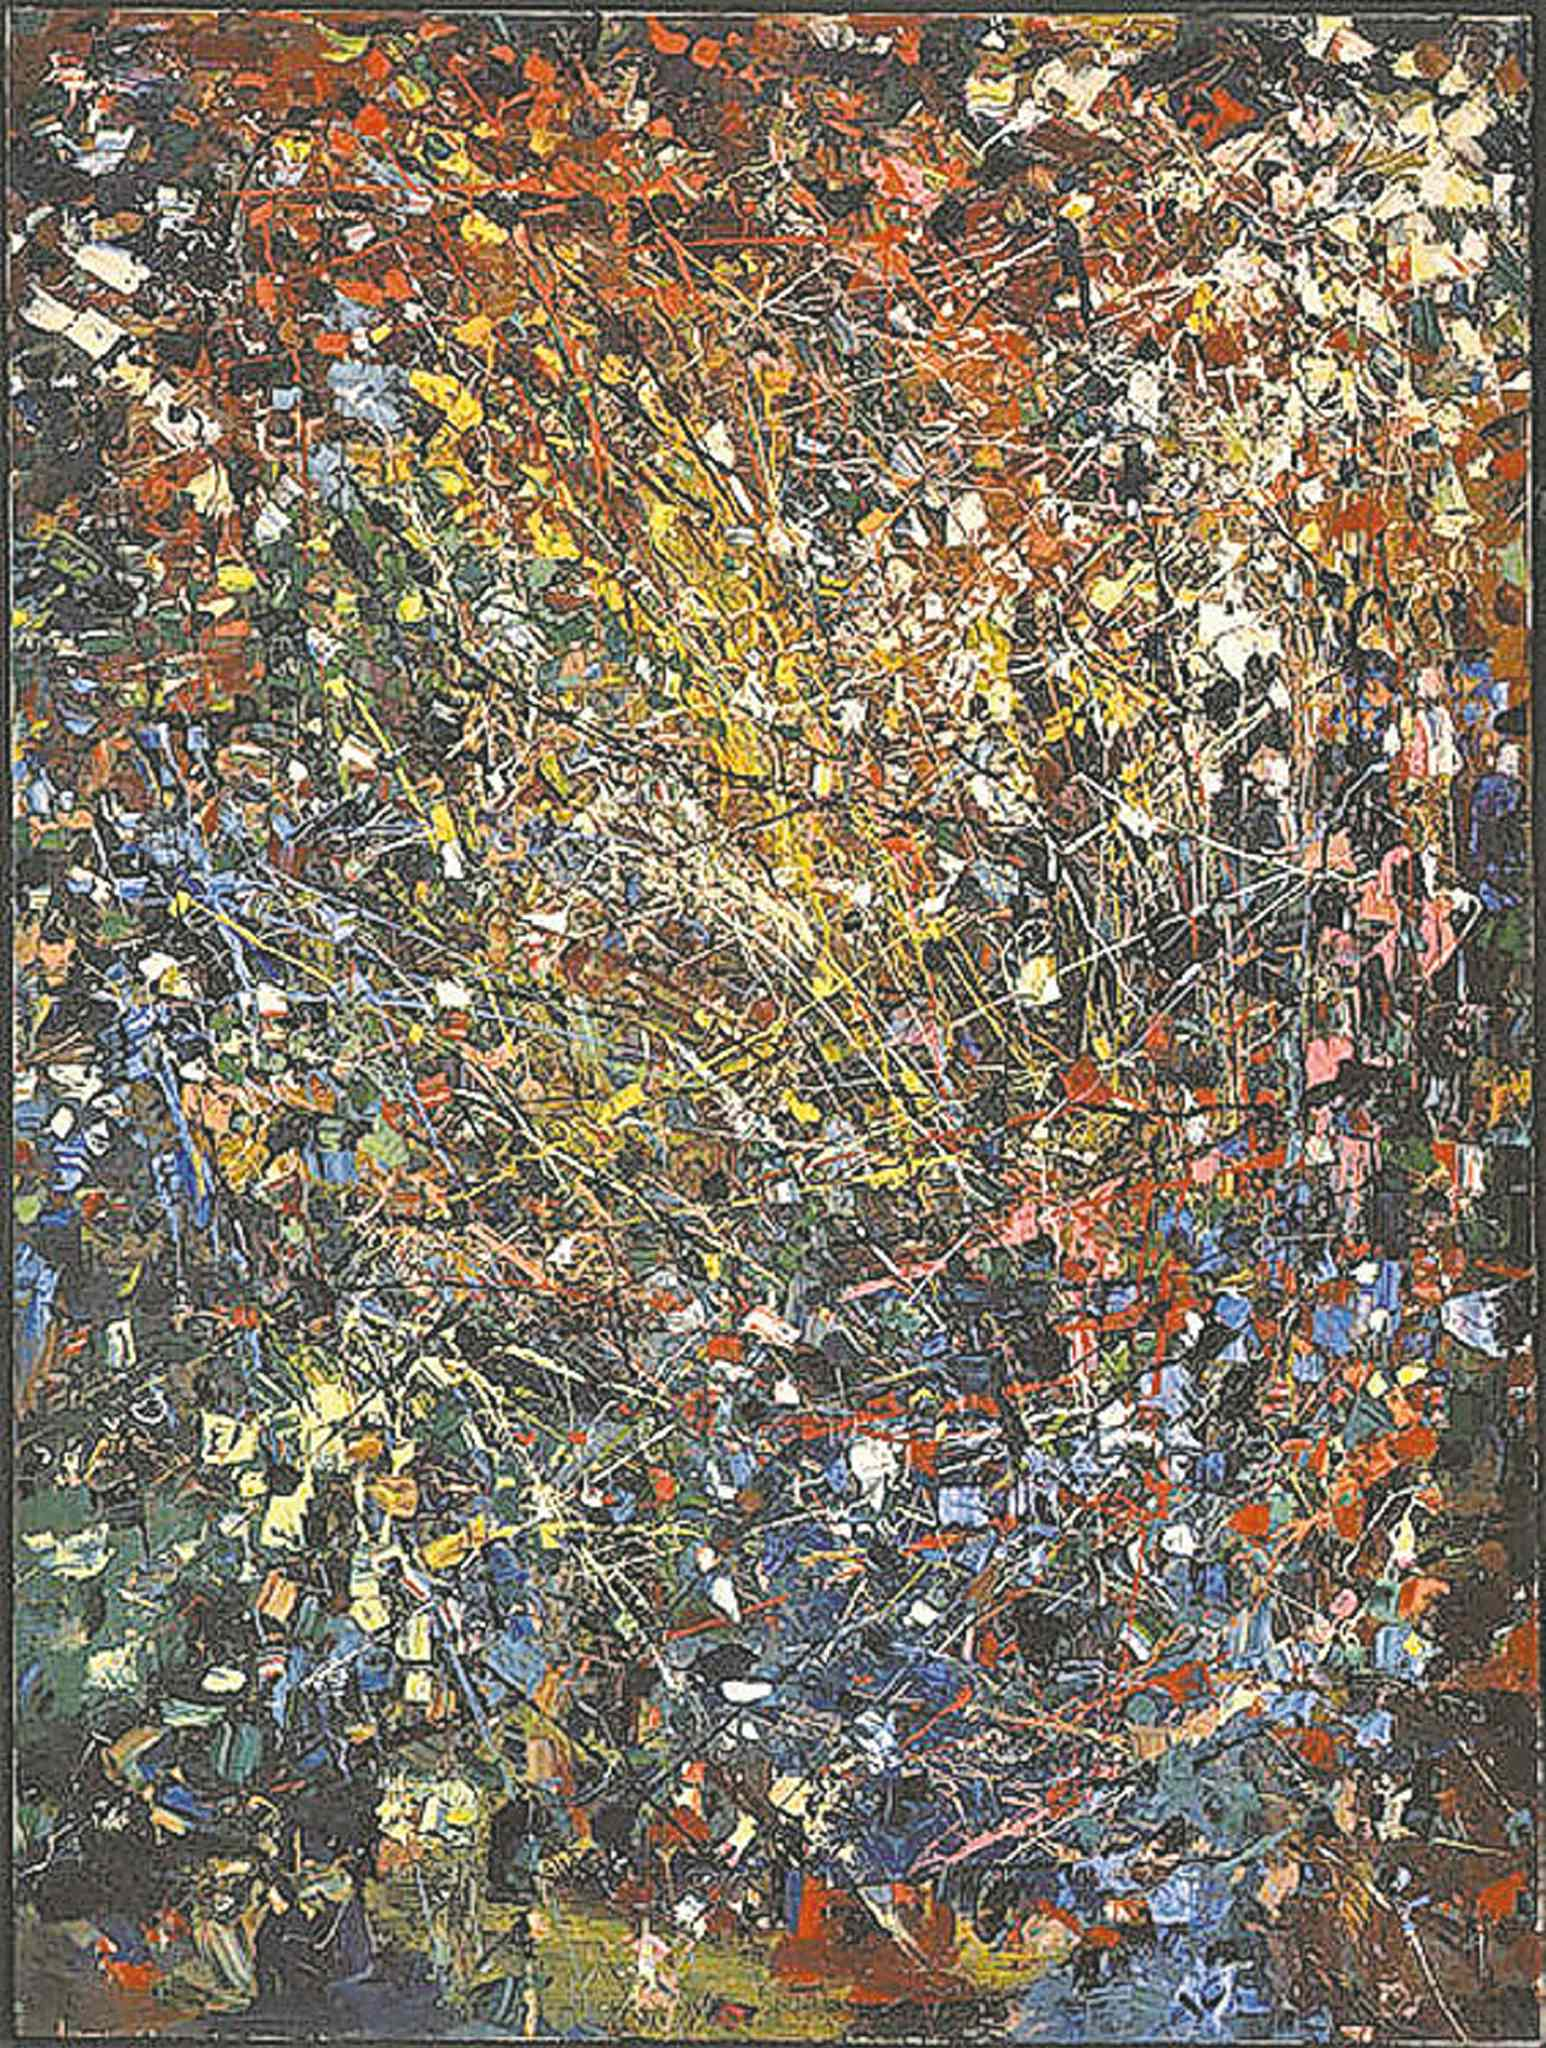 Jean-Paul Riopelle's Vallée.